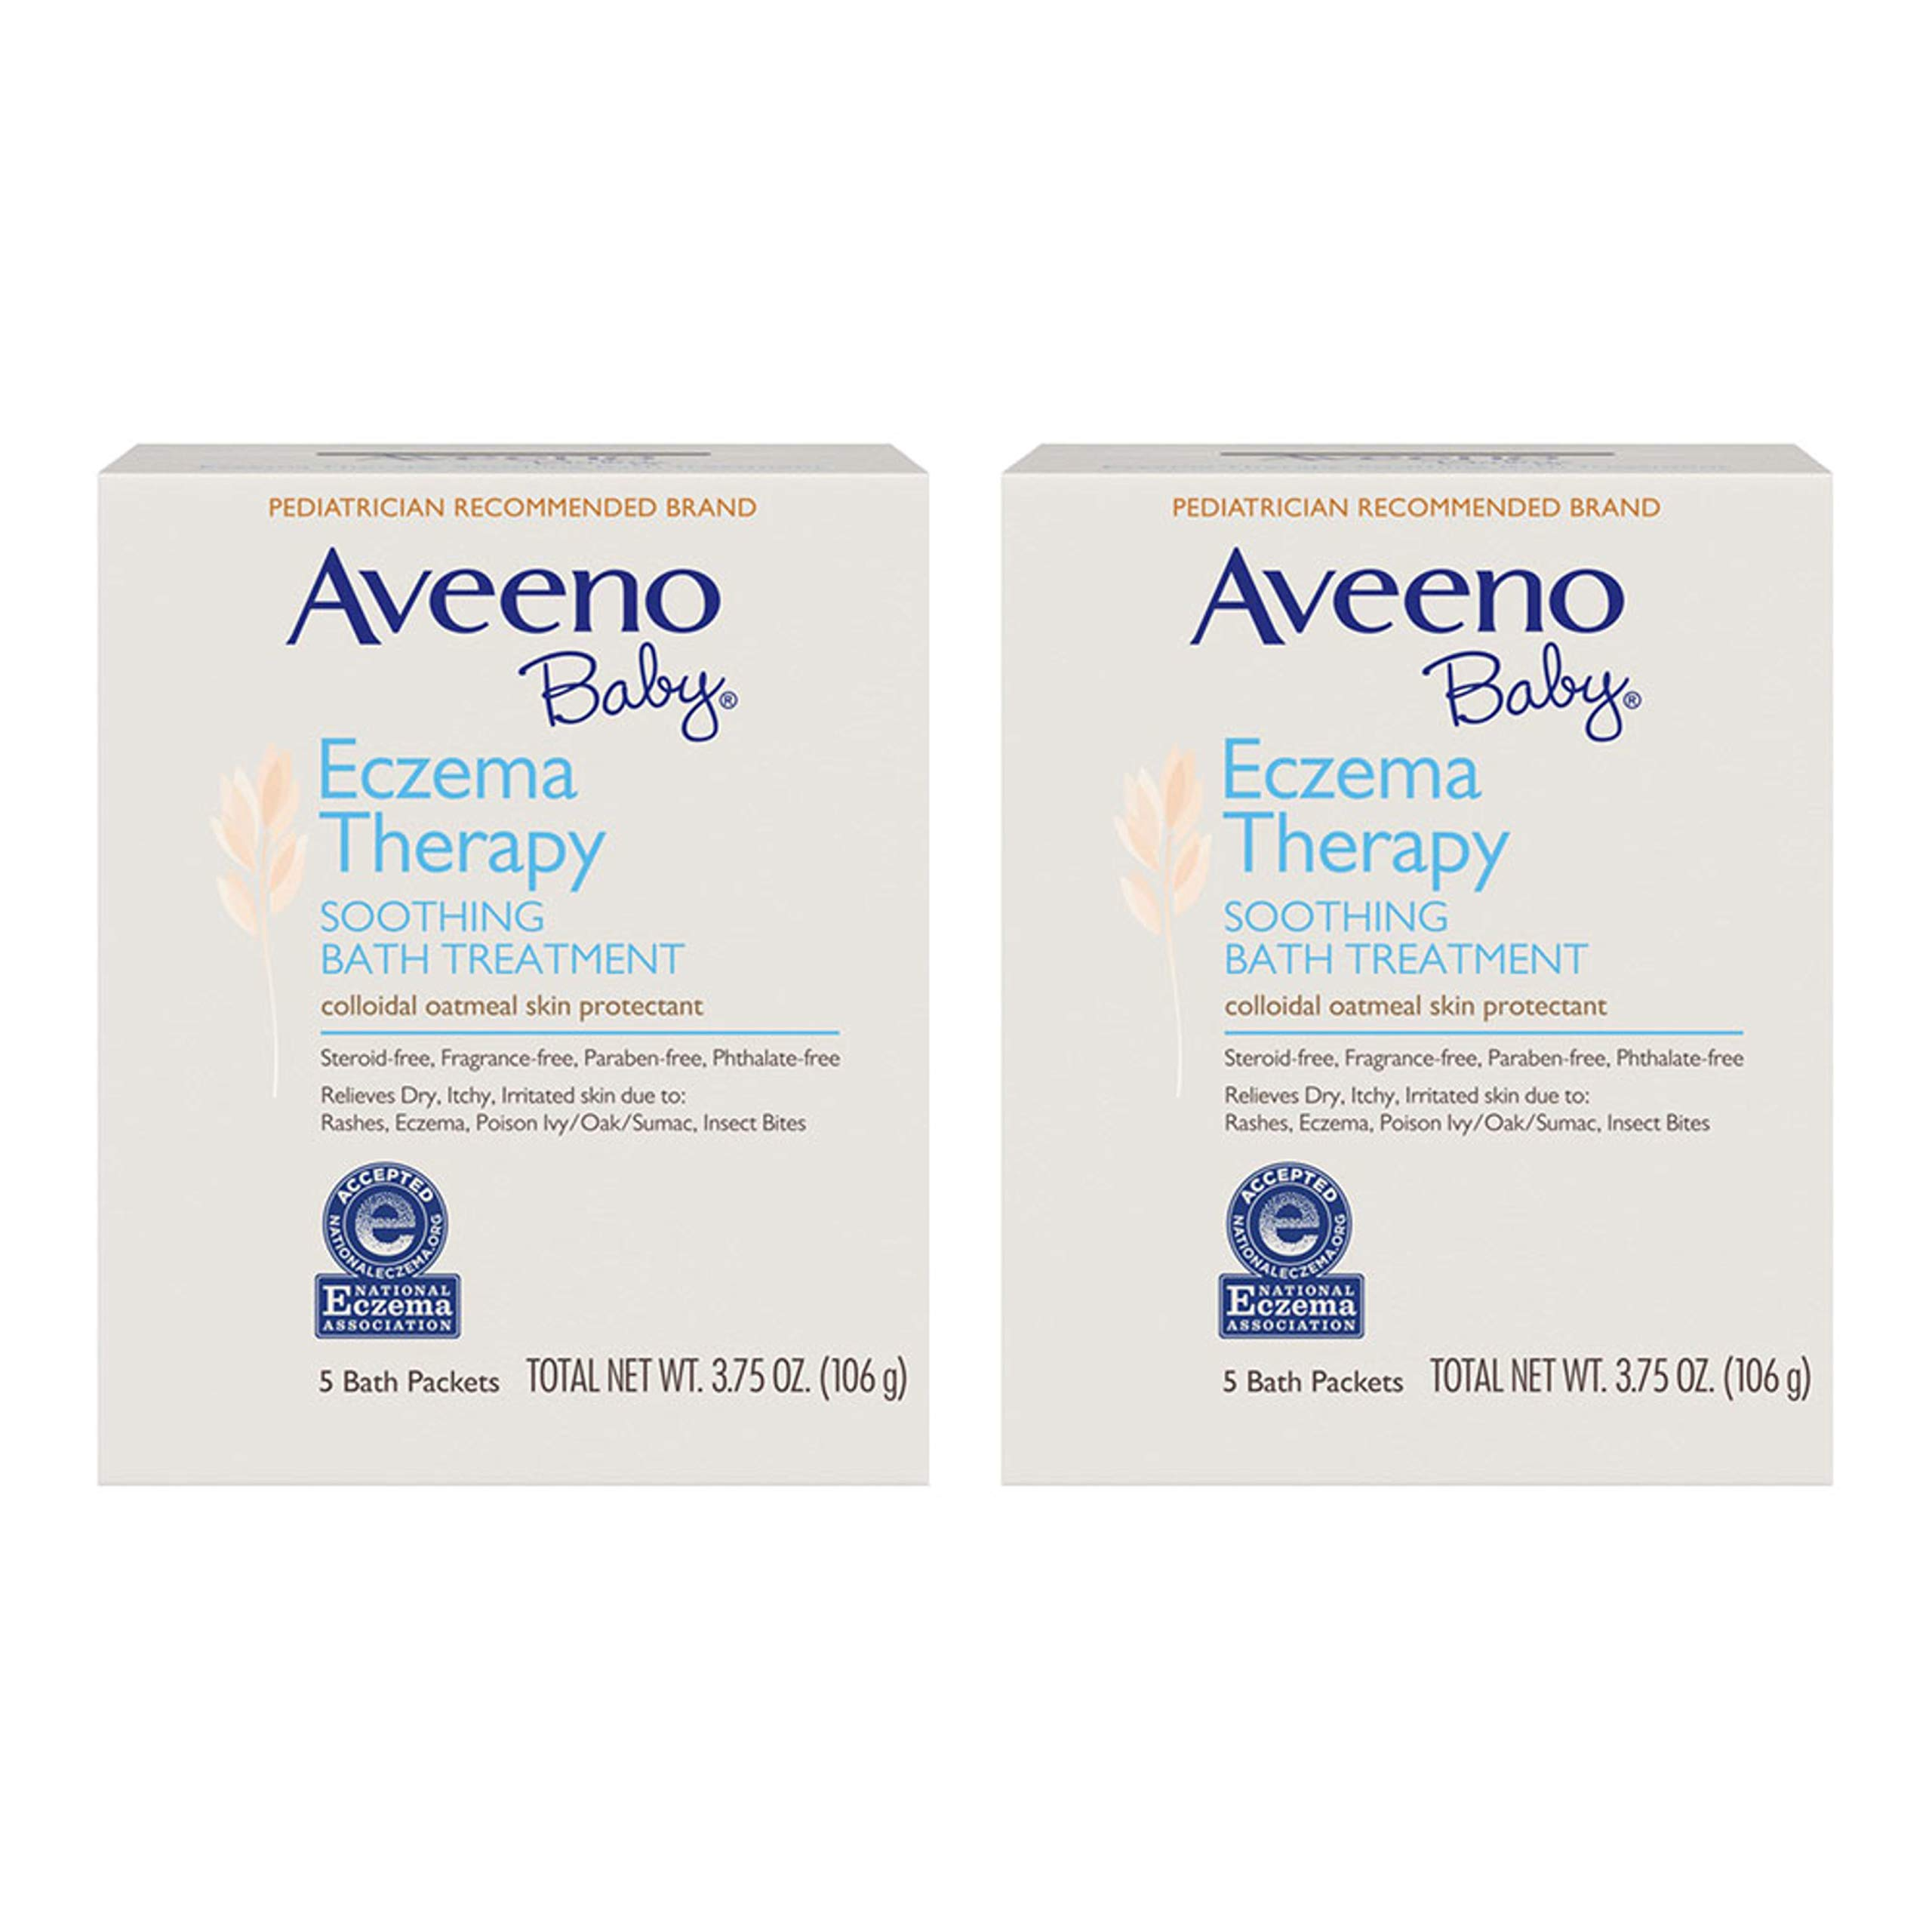 Aveeno Baby Eczema Therapy Soothing Bath Treatment for Relief of Dry, Itchy and Irritated Skin, Made with Soothing Natural Colloidal Oatmeal, 5 ct. (Pack of 2)